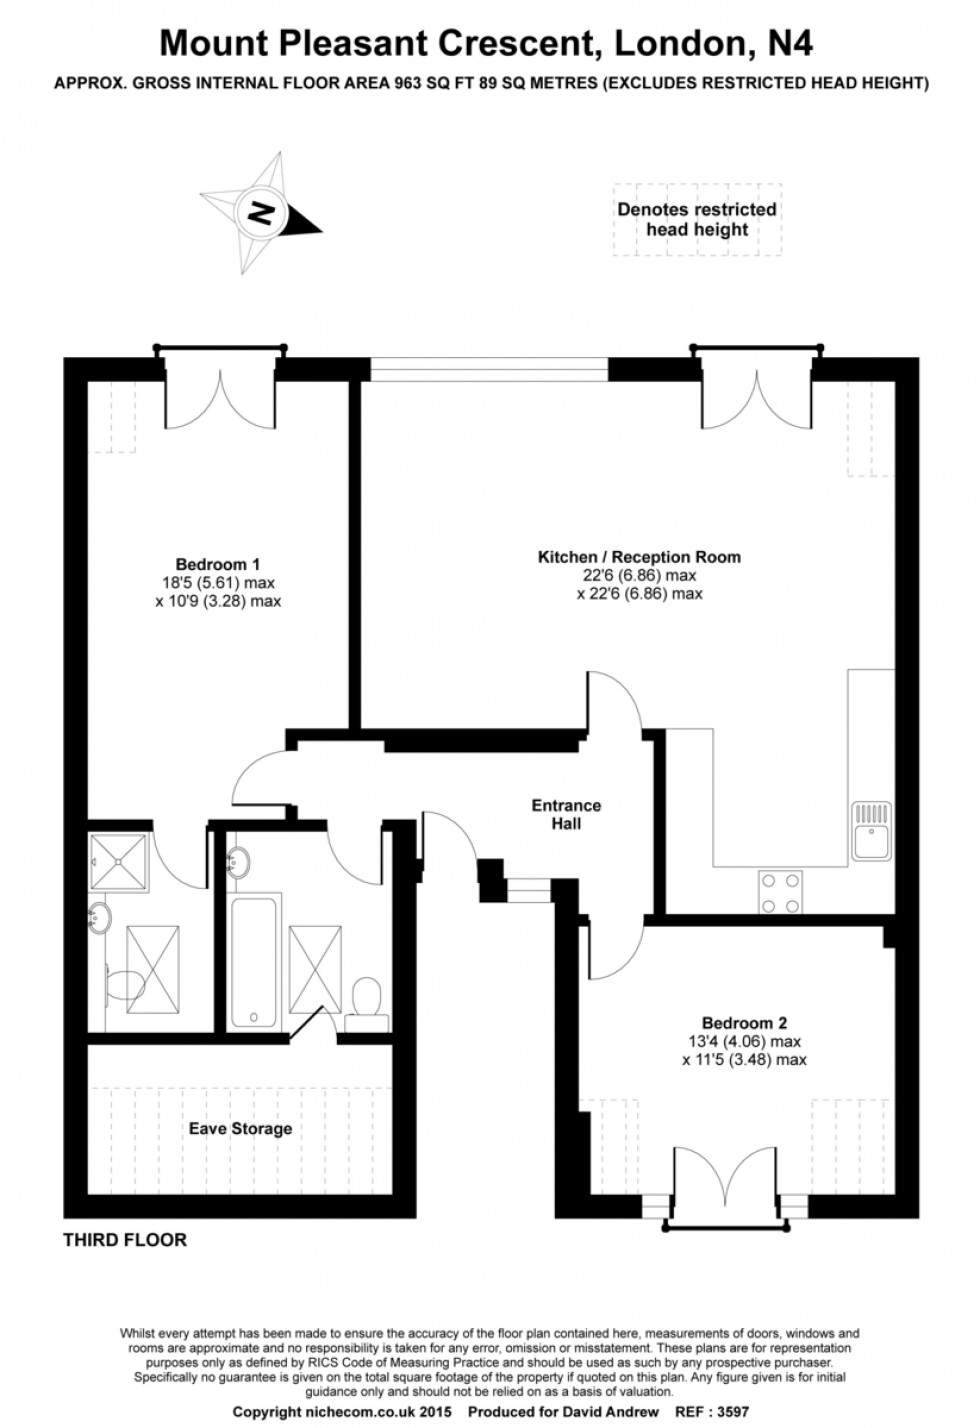 Floorplan for Mount Pleasant Crescent N4 4HW